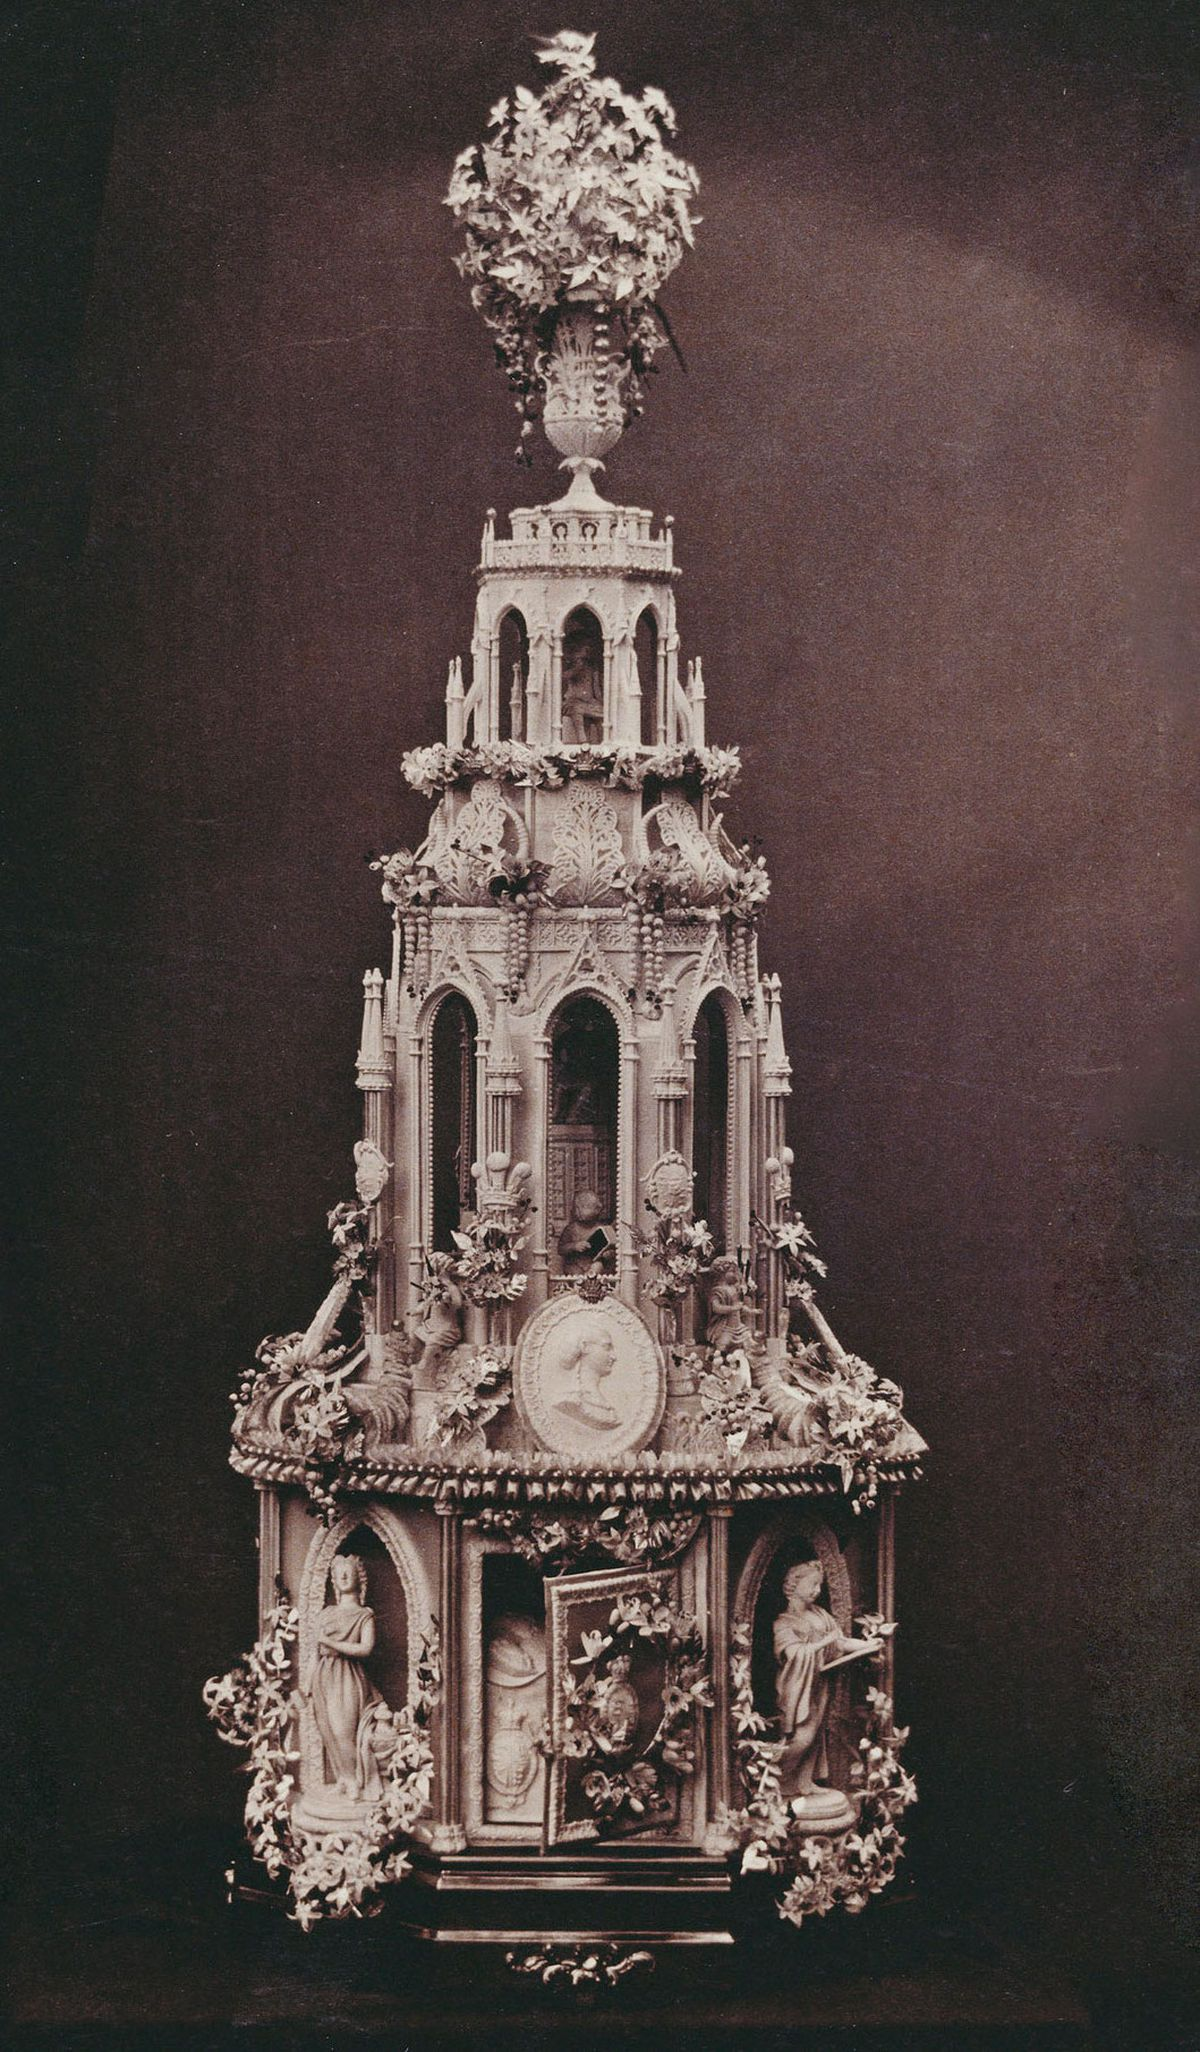 Wedding cake of Prince and Princess of Wales, later King Edward VII and Queen Alexandra